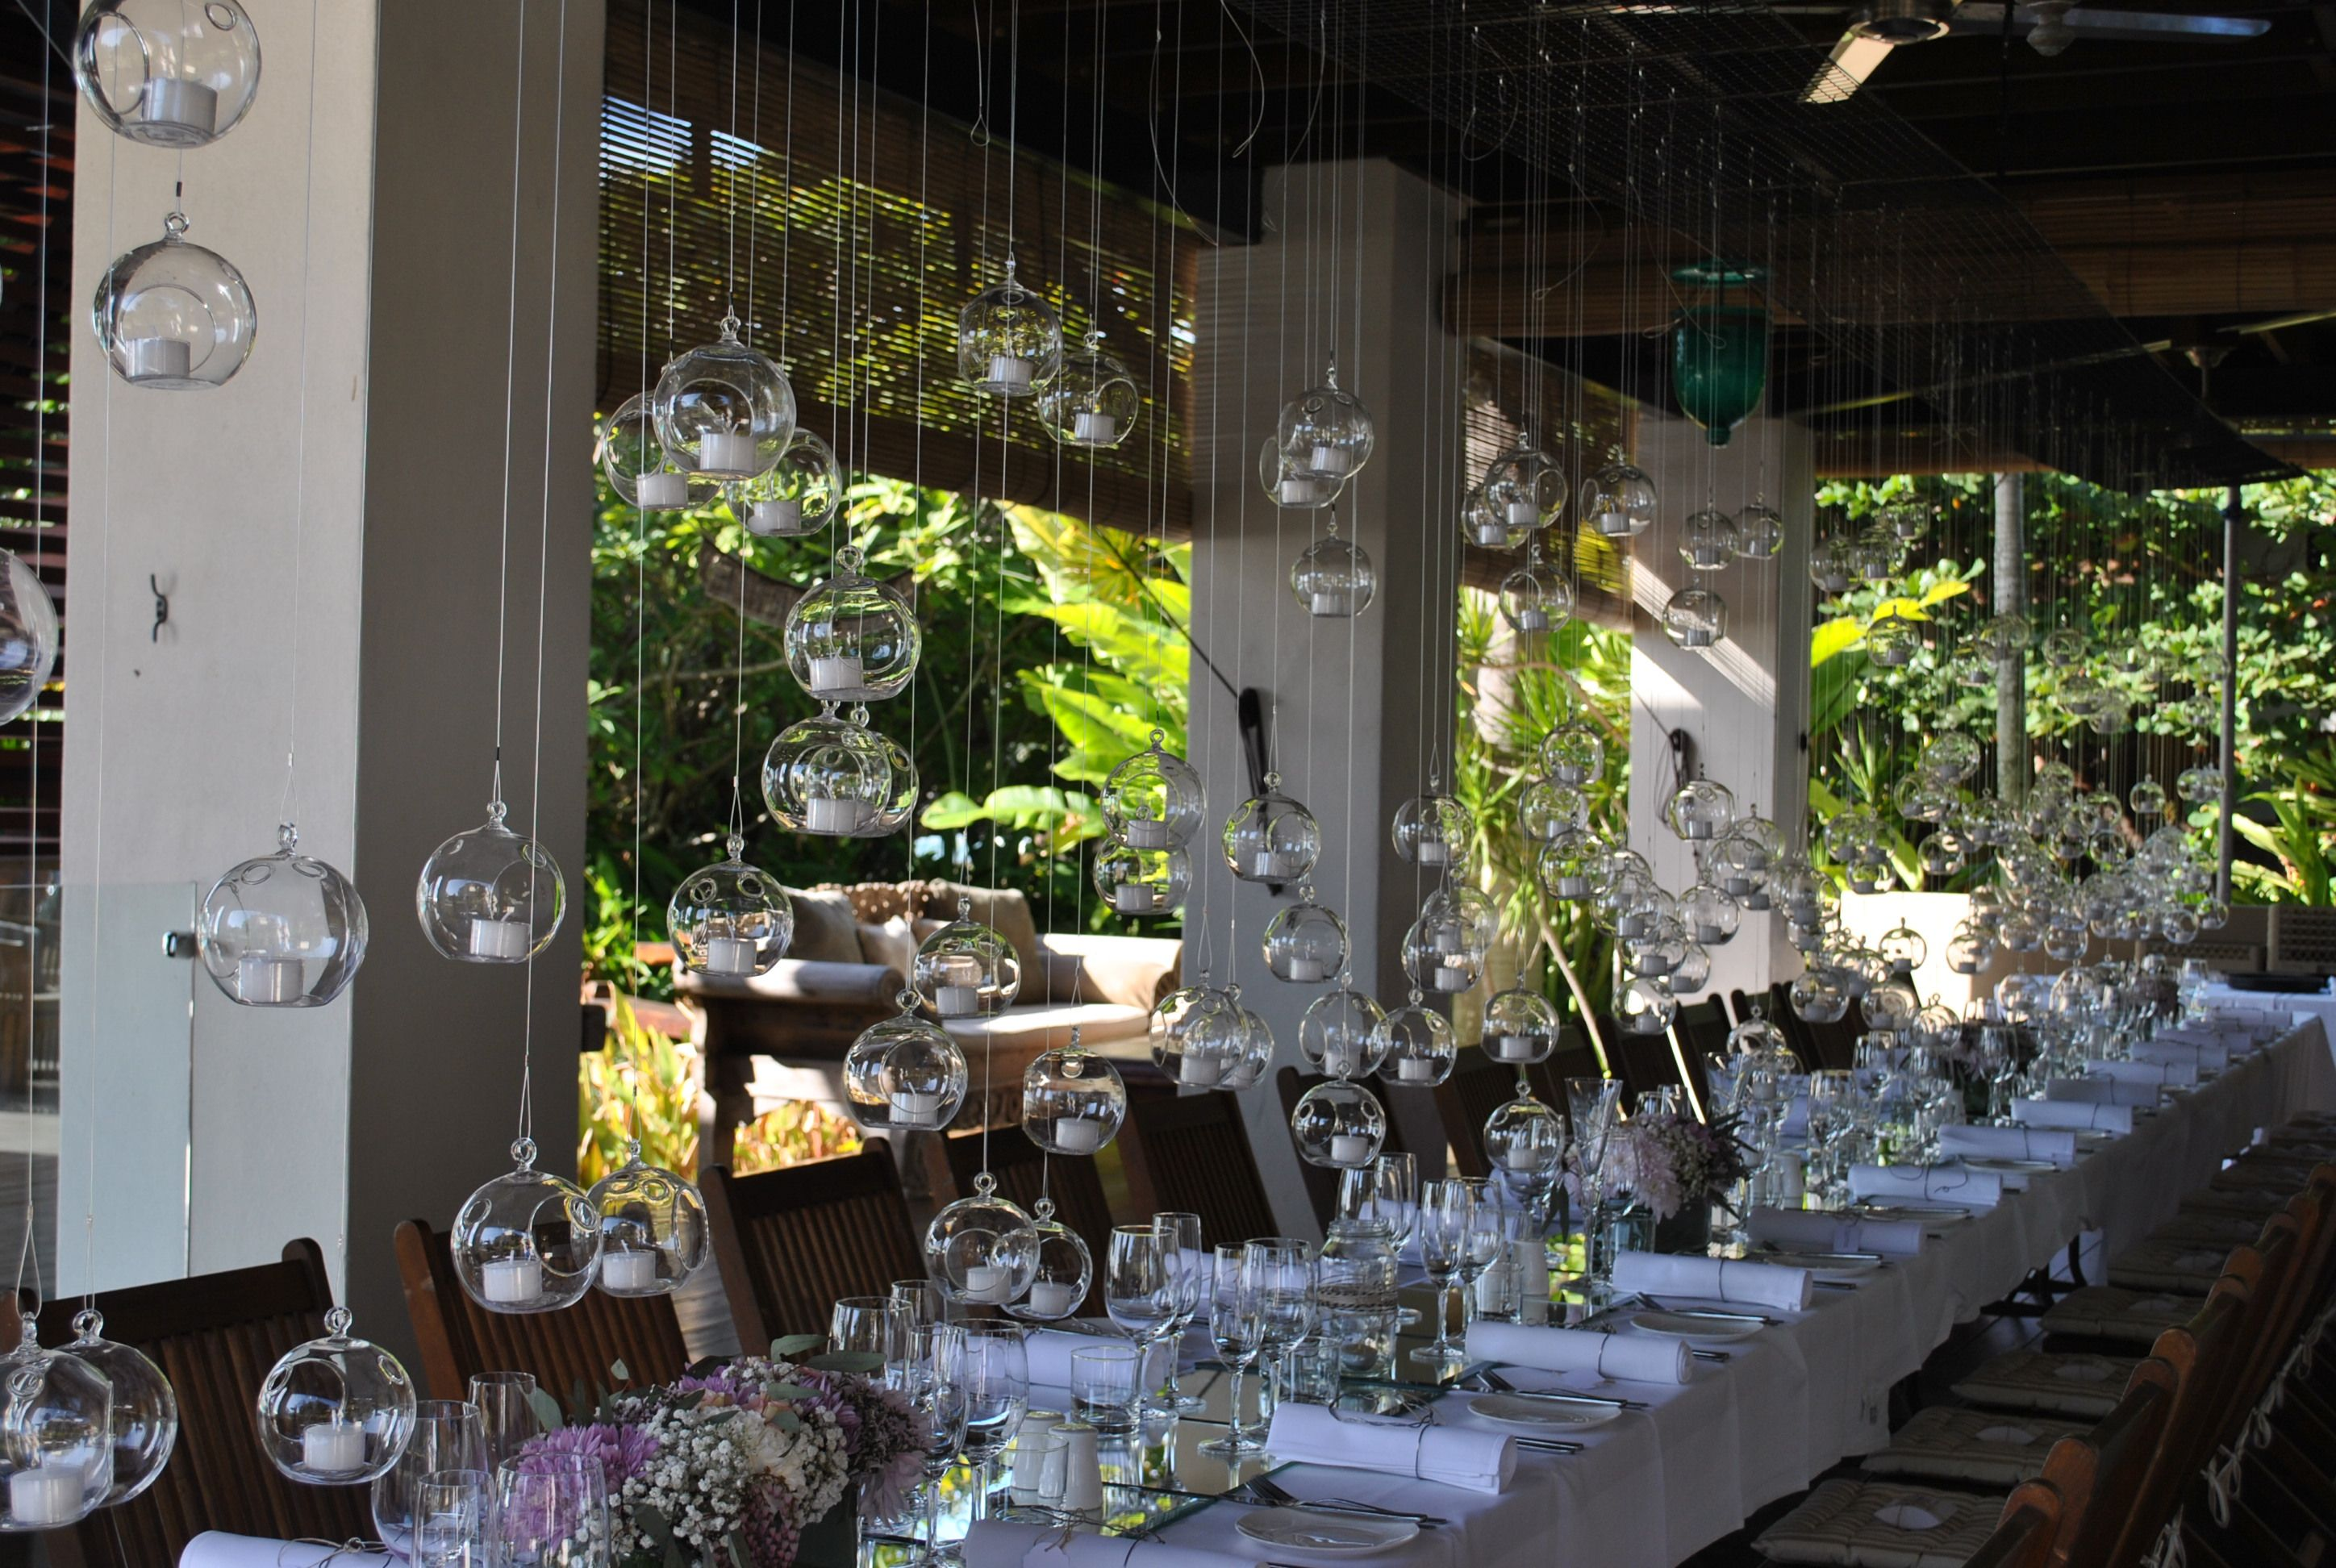 200 Votives suspended above the dining table made for a